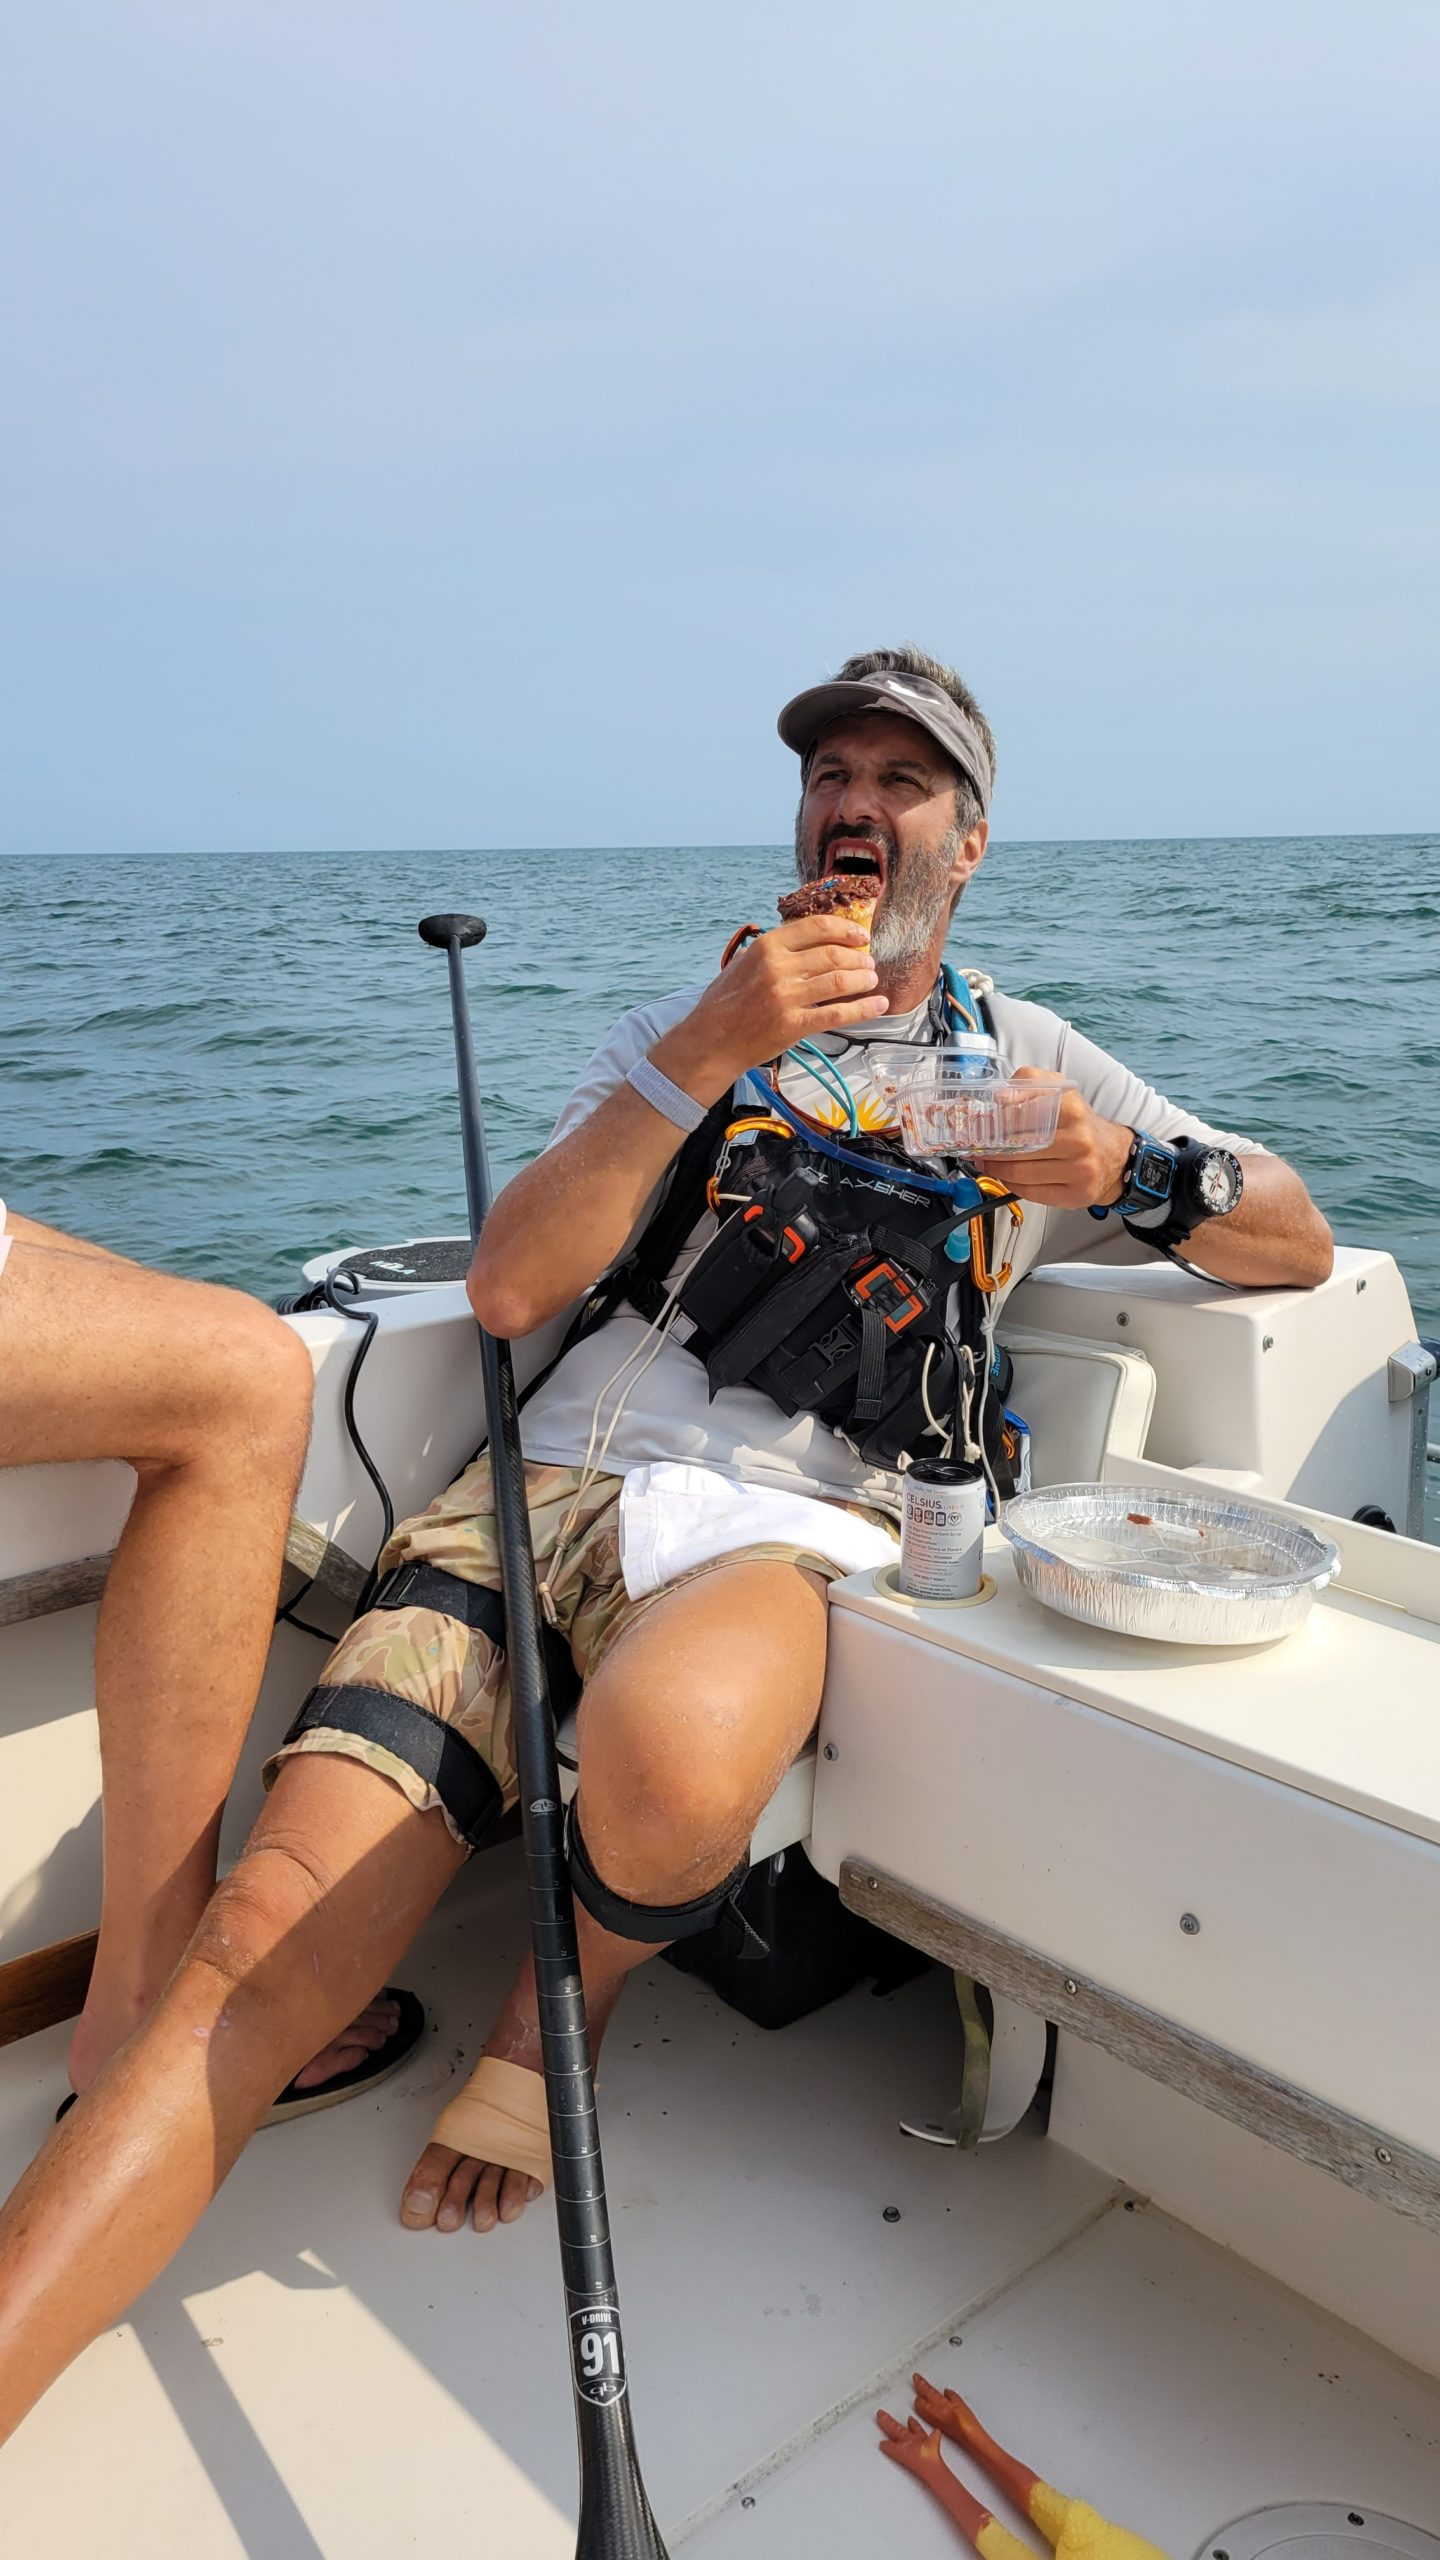 Adam Nagler boarded Norm Stump's boat just off the shores of Southampton to enjoy some Fellingham's and a birthday cupcake that friends Carol and Tim Reed brought for him.